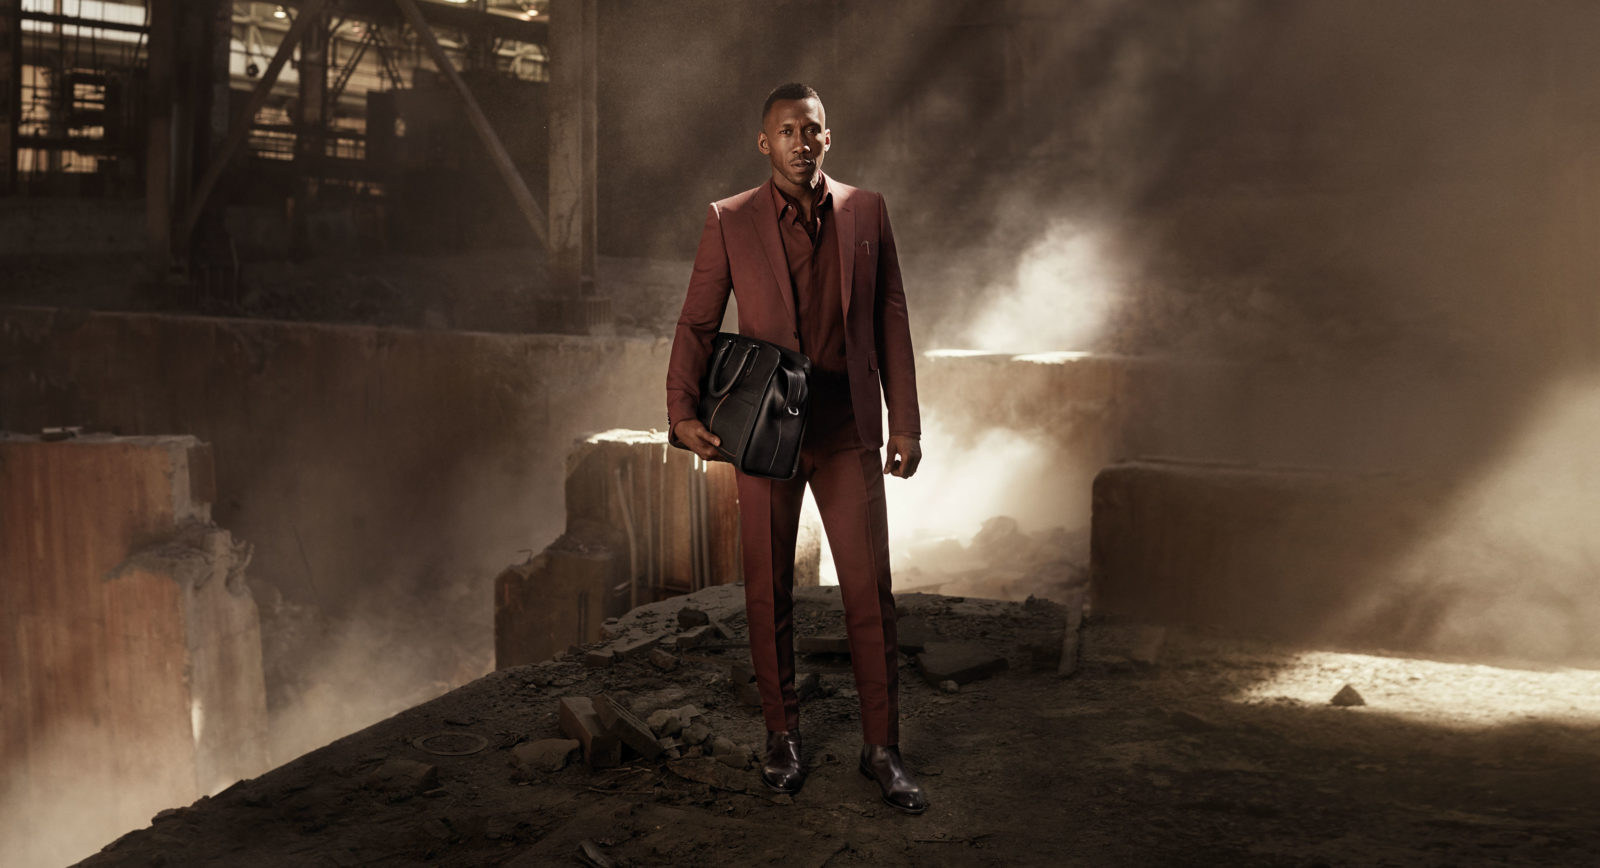 Zegna inspires men to live with purpose with #WhatMakesAMan